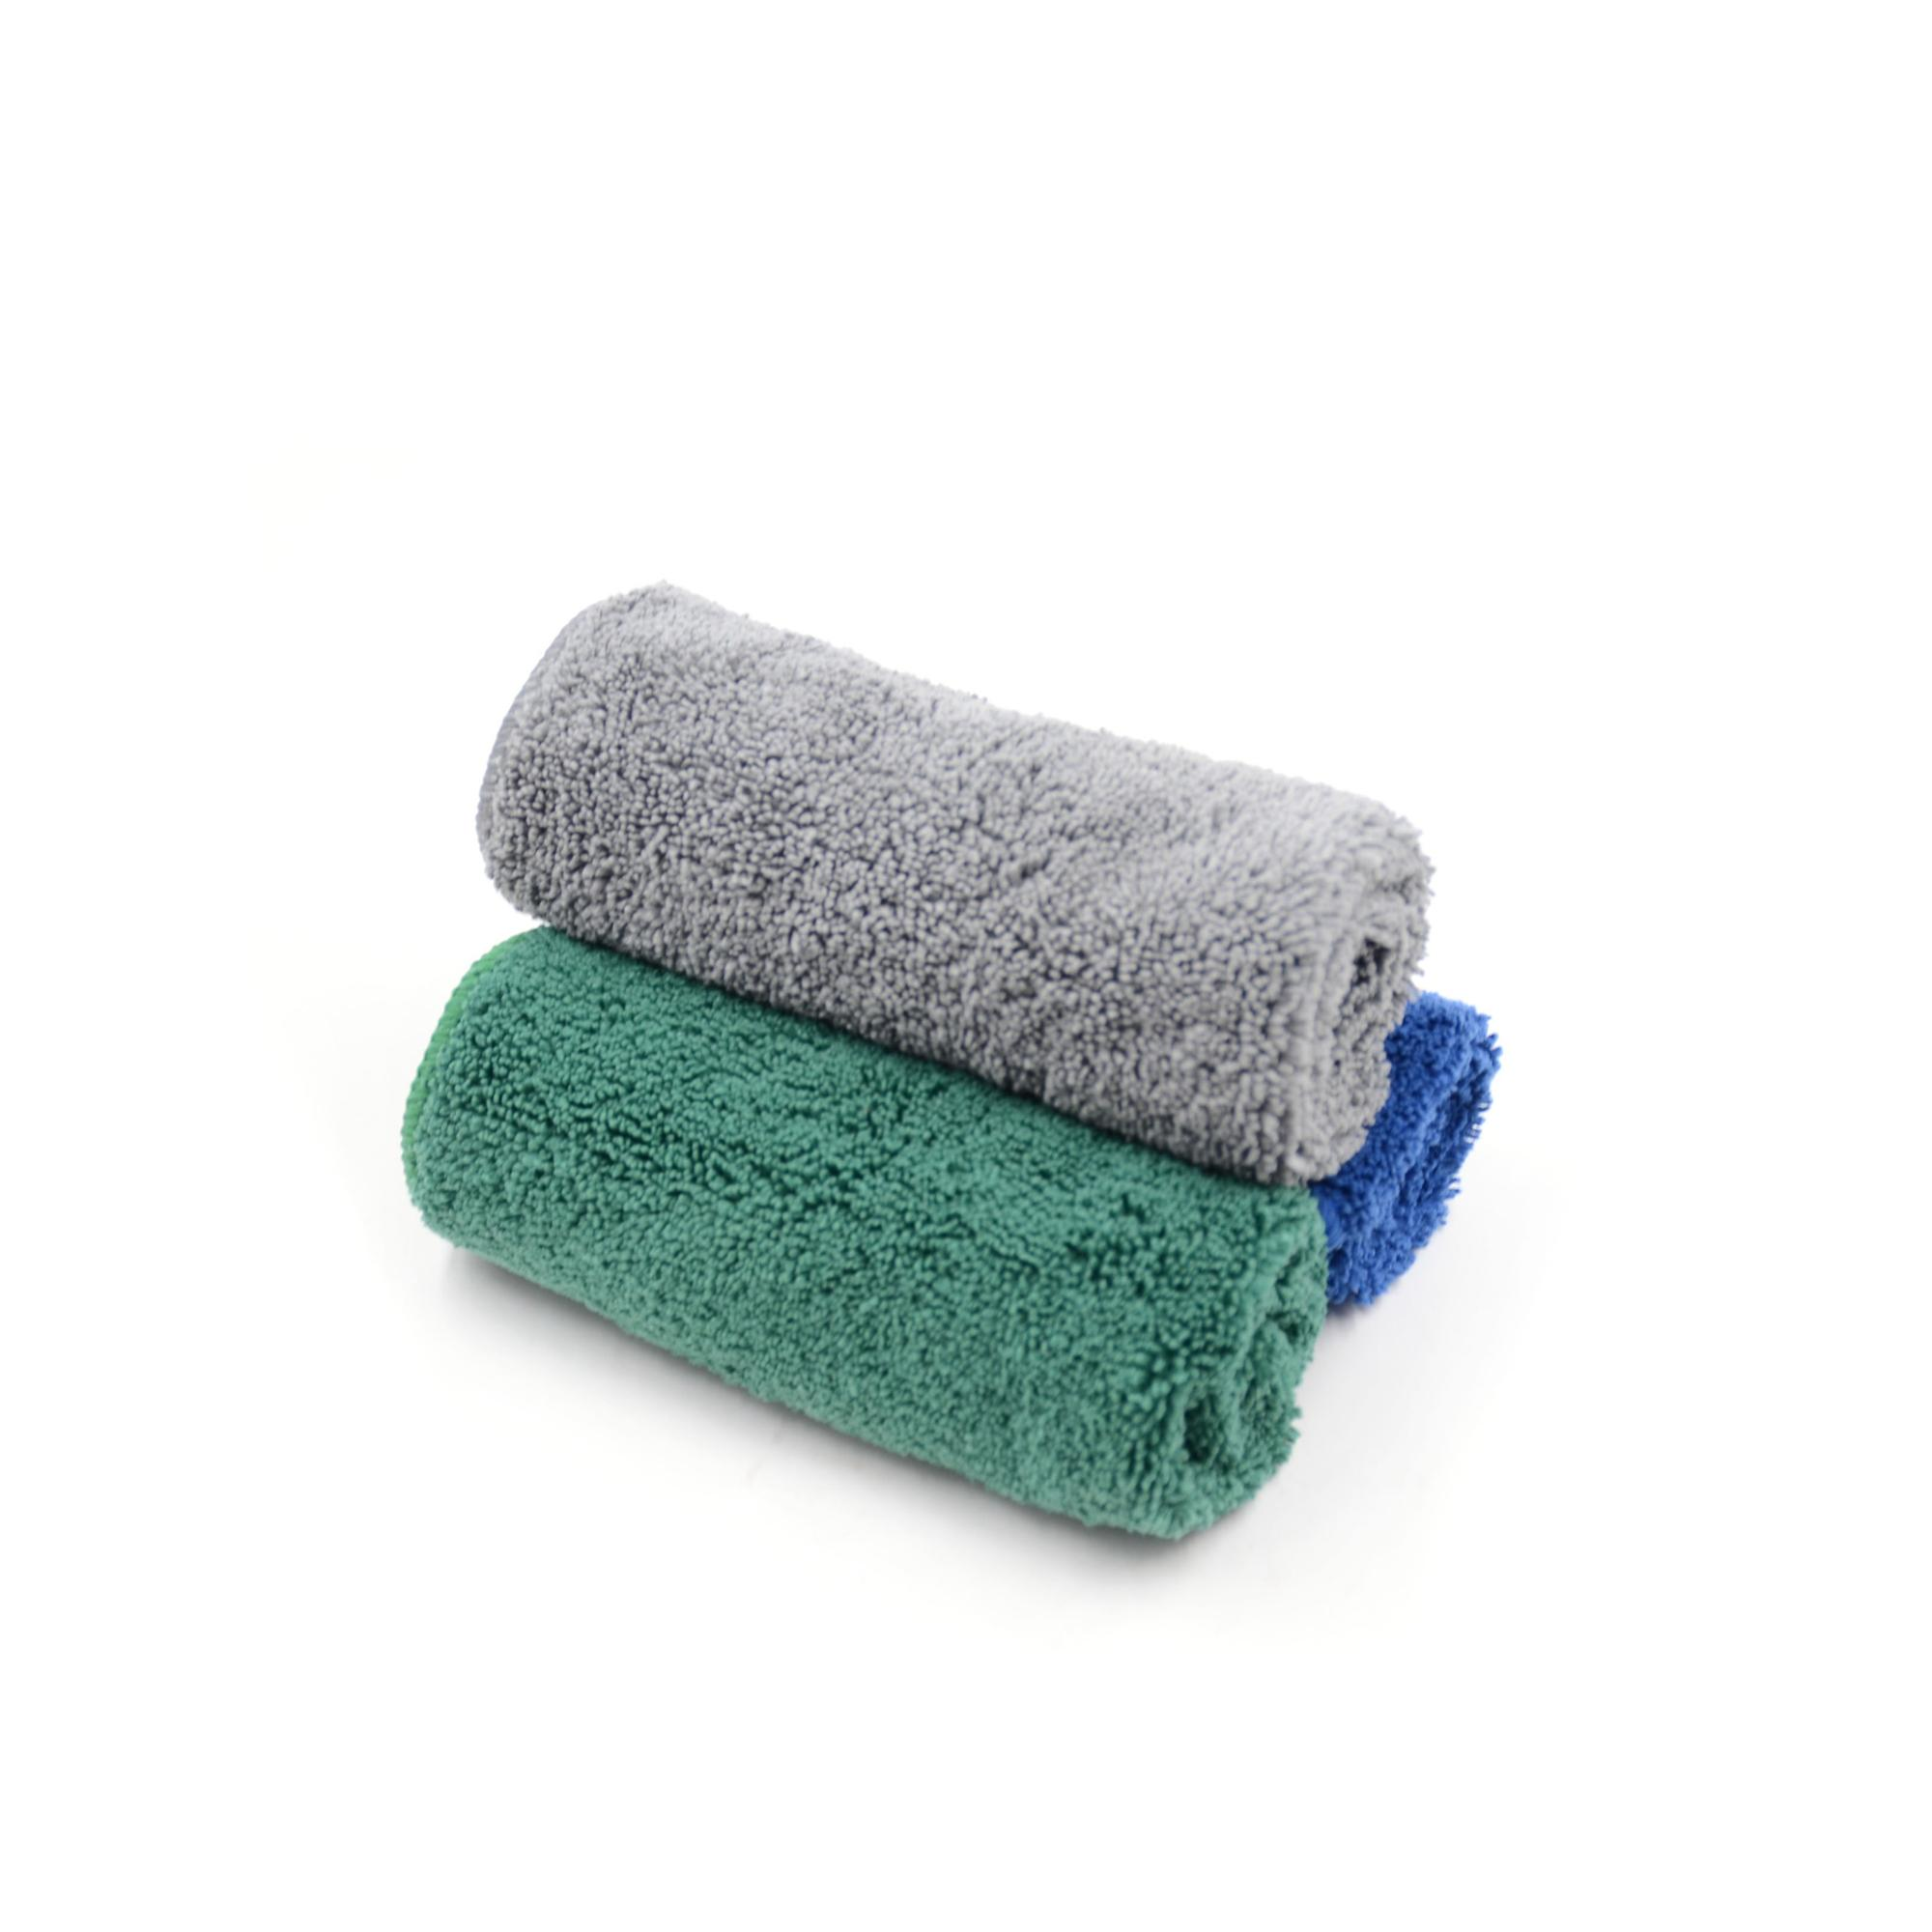 In stock standard size professional car drying dustless towel